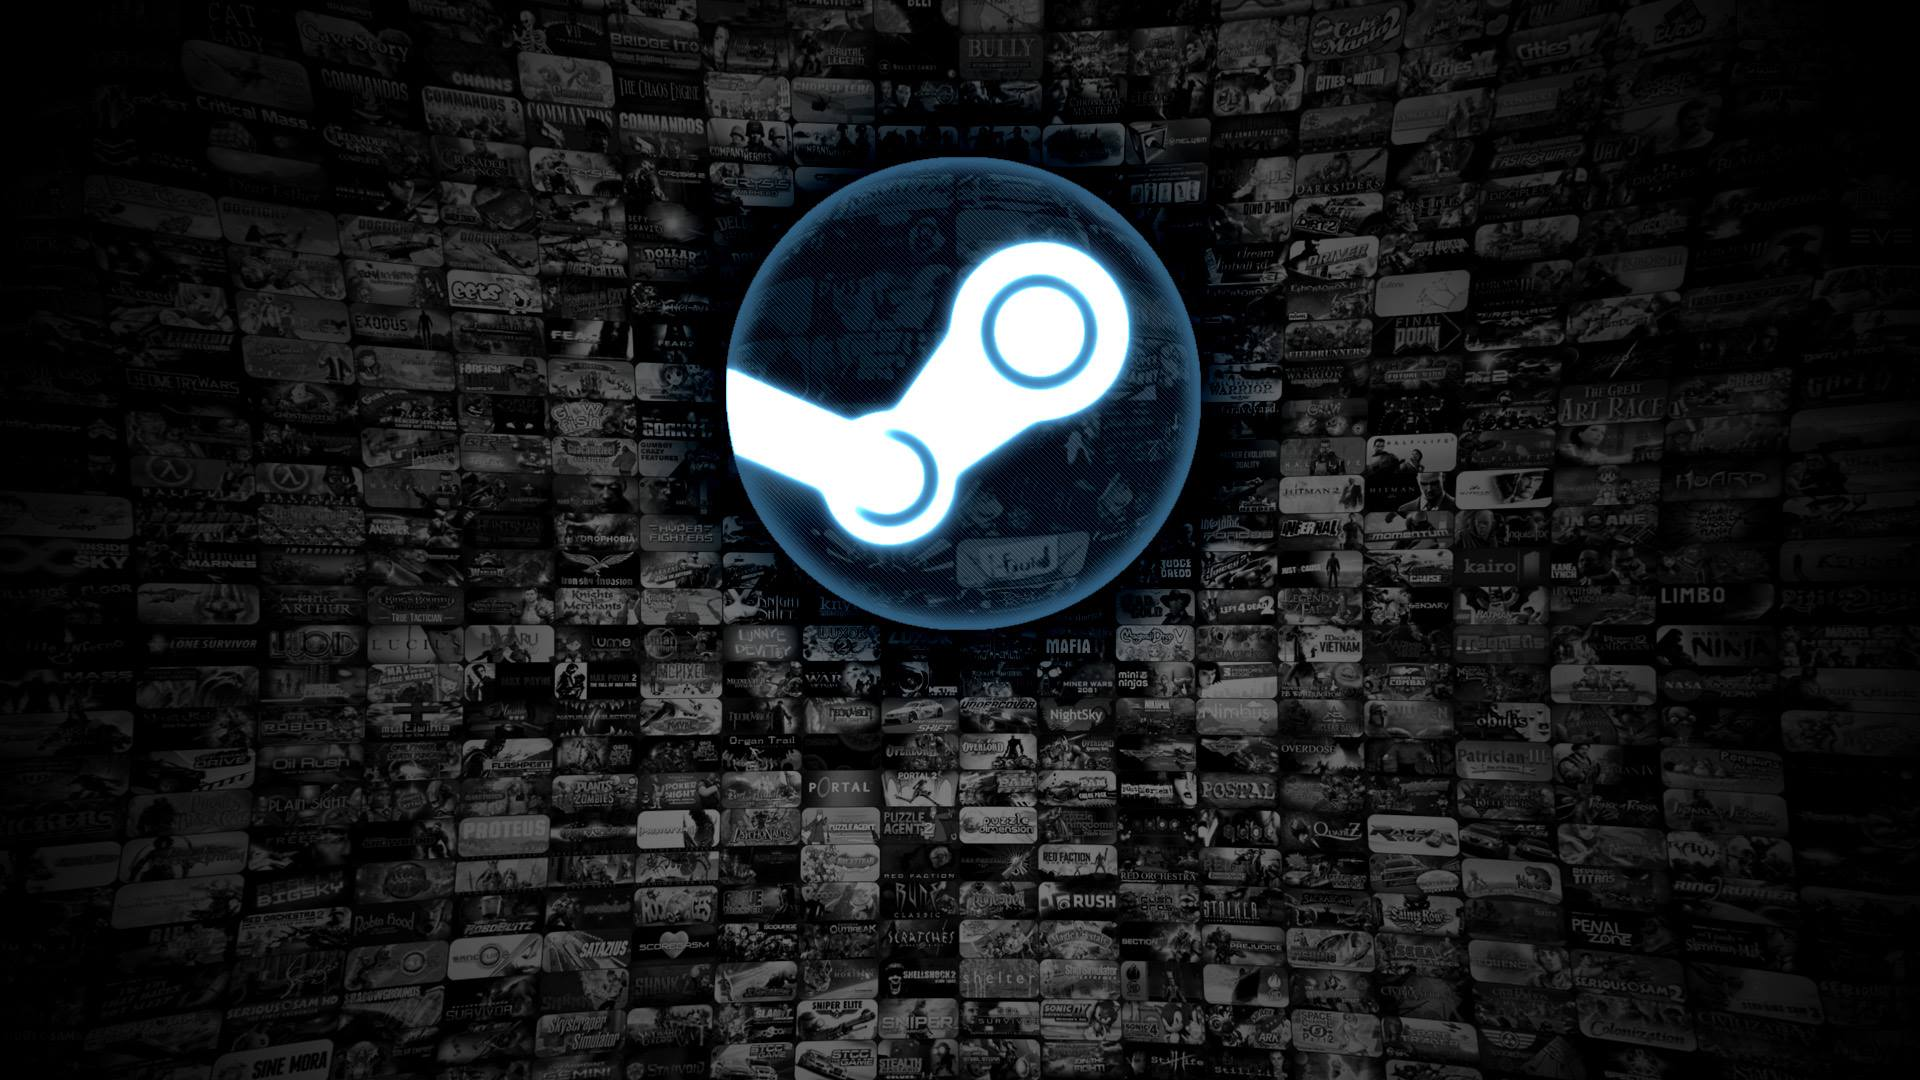 Steam's wishlist tool has had an overhaul